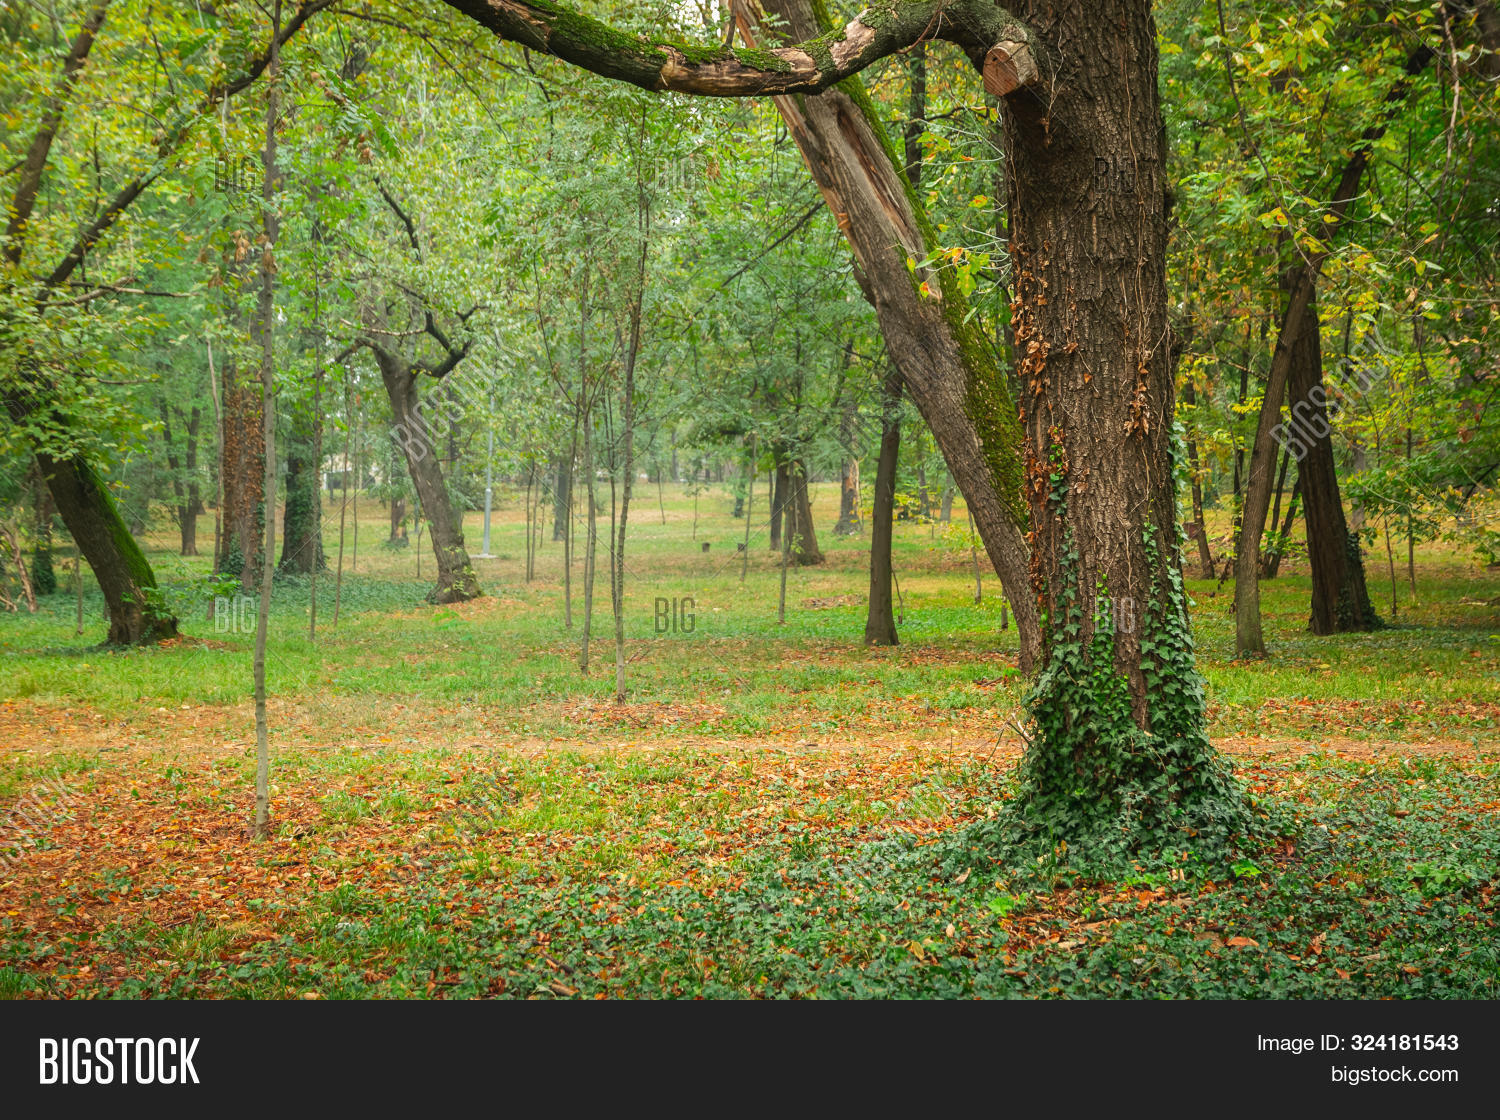 autumn,autumnal,background,beauty,botany,branch,central,city,colorful,colors,creeper,day,daylight,enjoyment,eve,fall,focus,foliage,forest,freshness,grass,green,horizontal,landscape,leaf,leaves,lush,meditating,nature,no,october,orange,outdoor,park,people,perspective,public,red,relaxation,solitude,tranquility,tree,trunk,urban,walk,walking,yellow